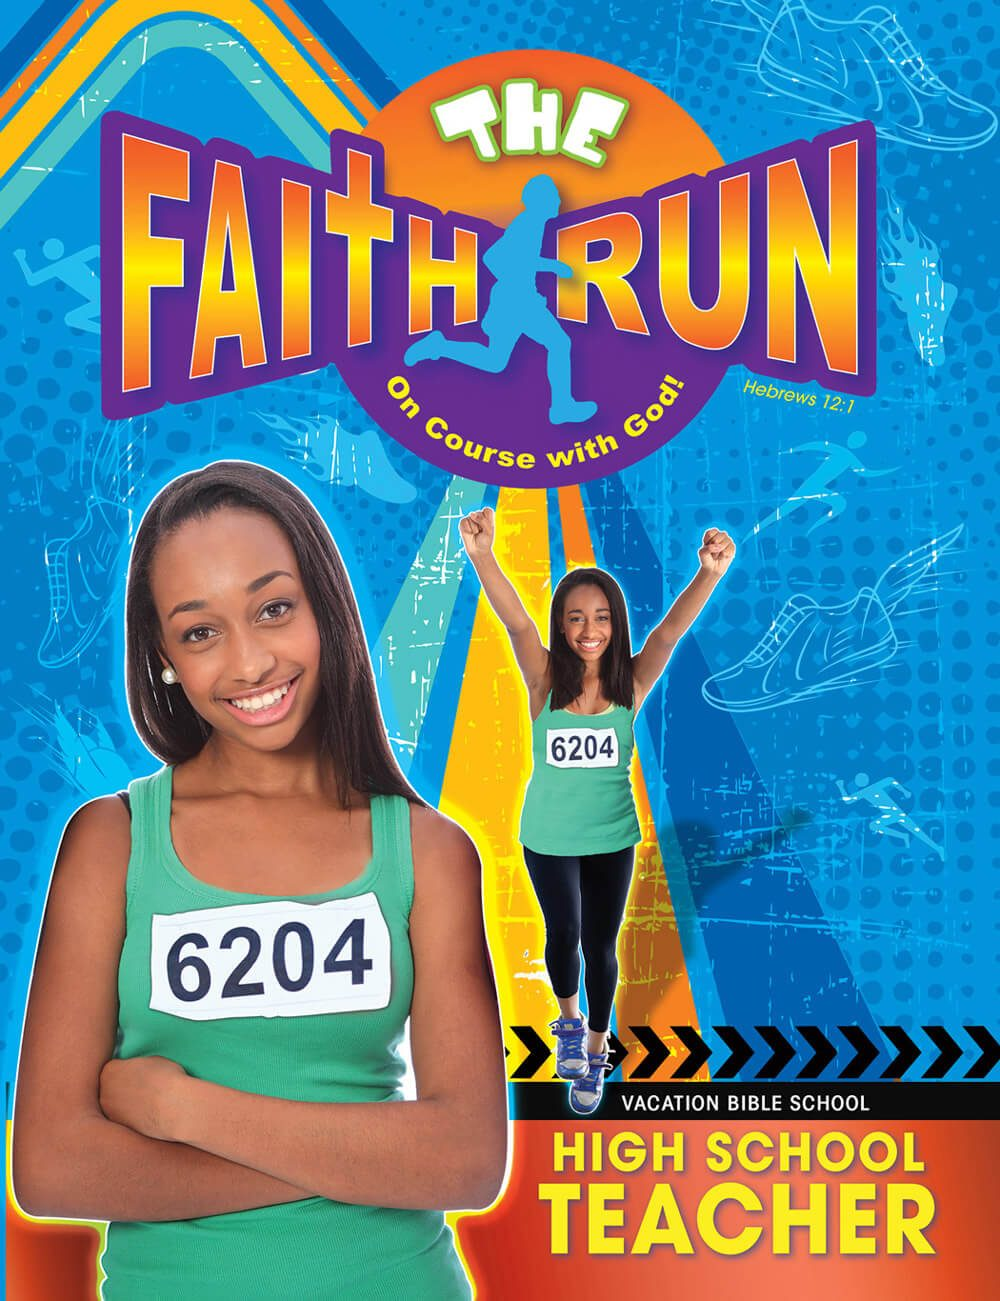 VBS The Faith Run High School Teacher 2017